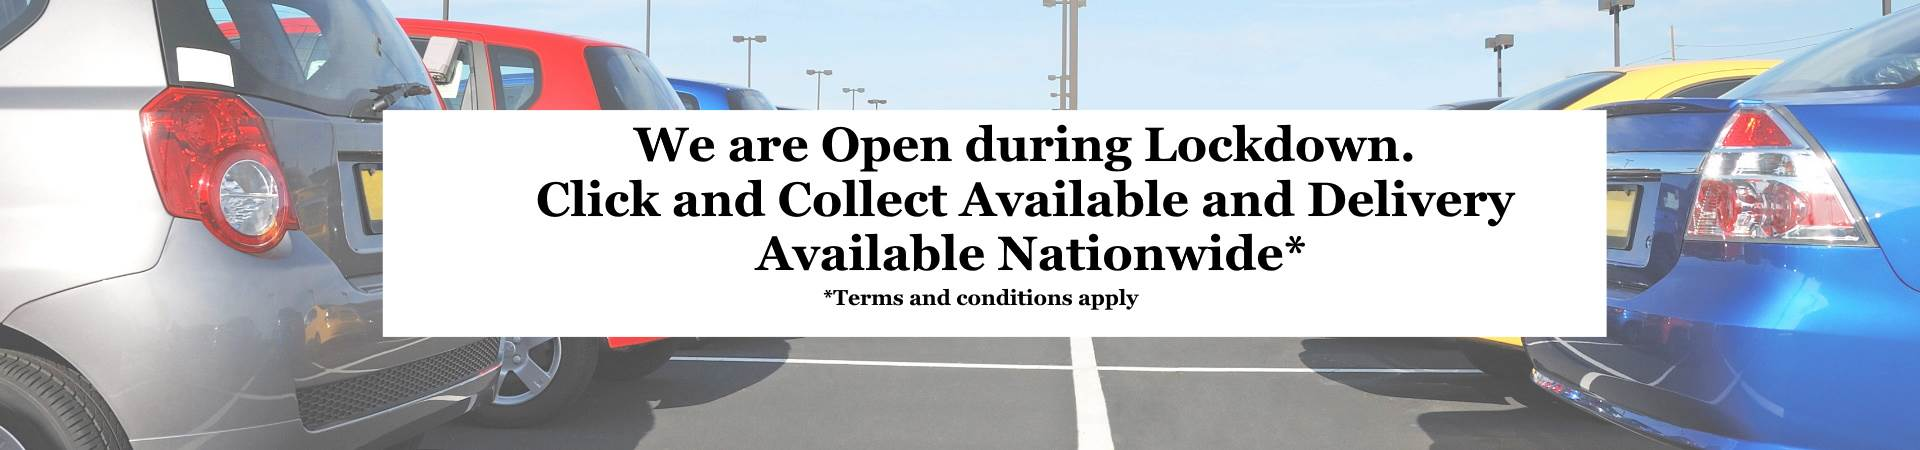 We are open during lockdown, click and collect available and delivery available nationwide